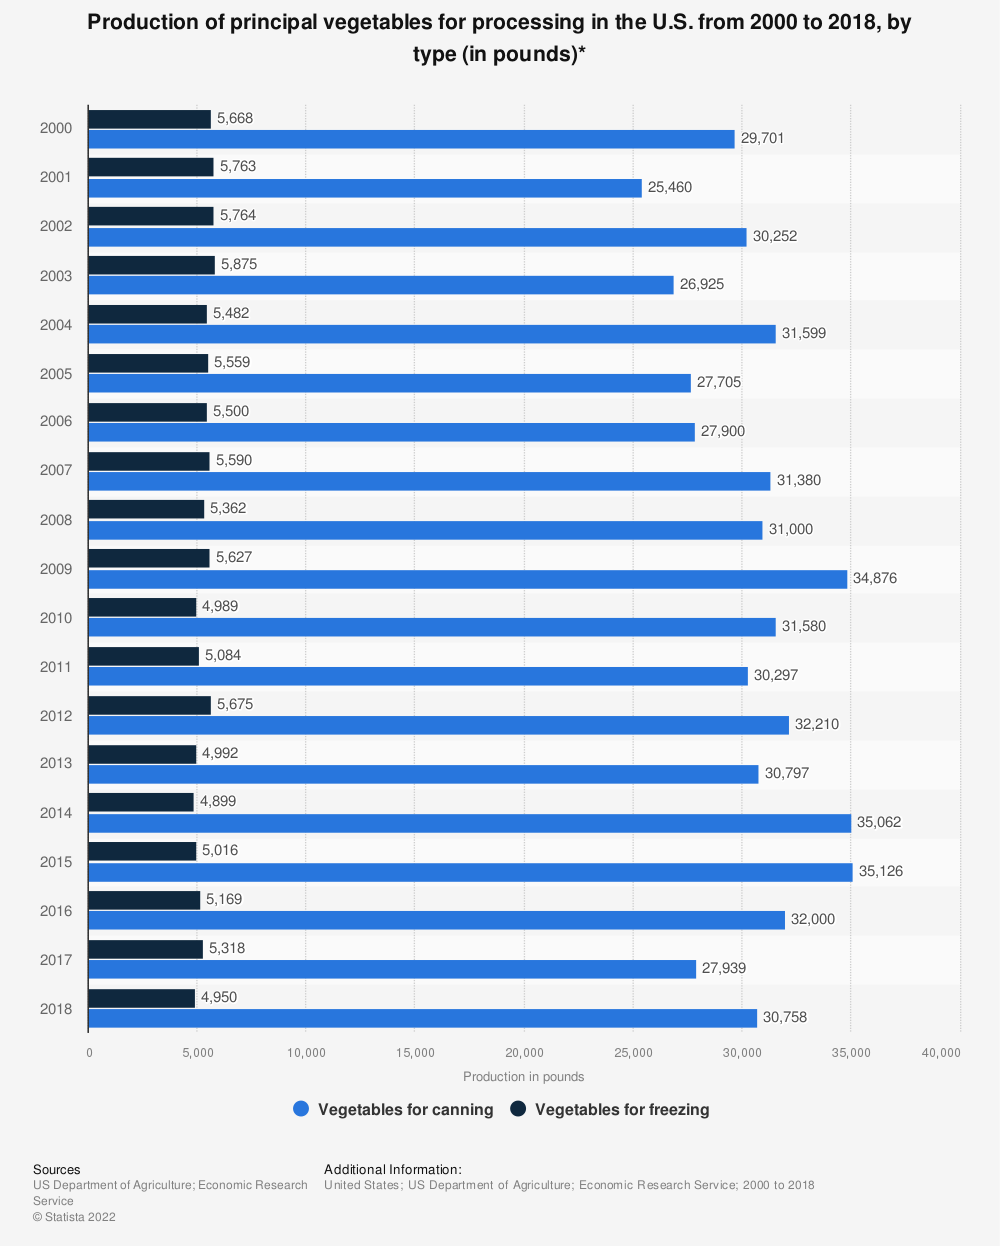 Statistic: Production of principal vegetables for processing in the U.S. from 2000 to 2016 (in tons)* | Statista